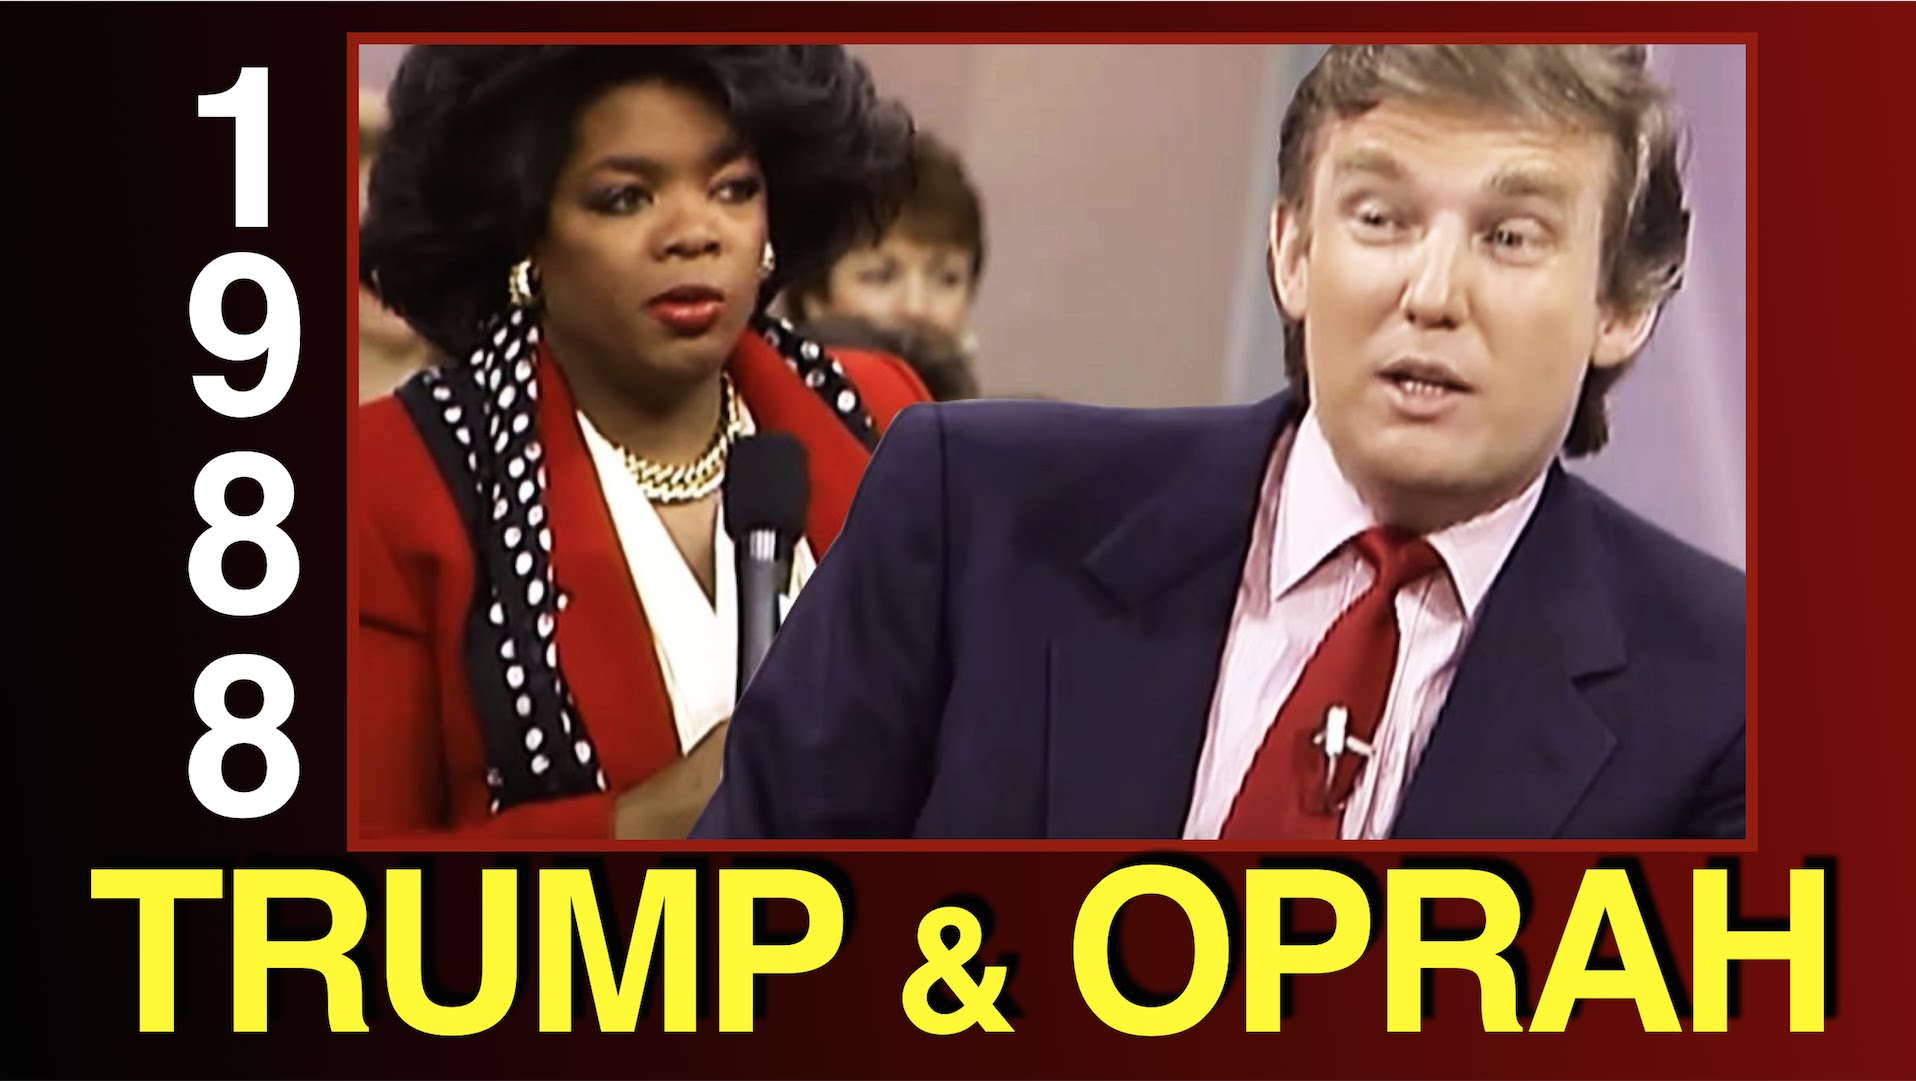 Oprah Interviews Donald Trump in 1988